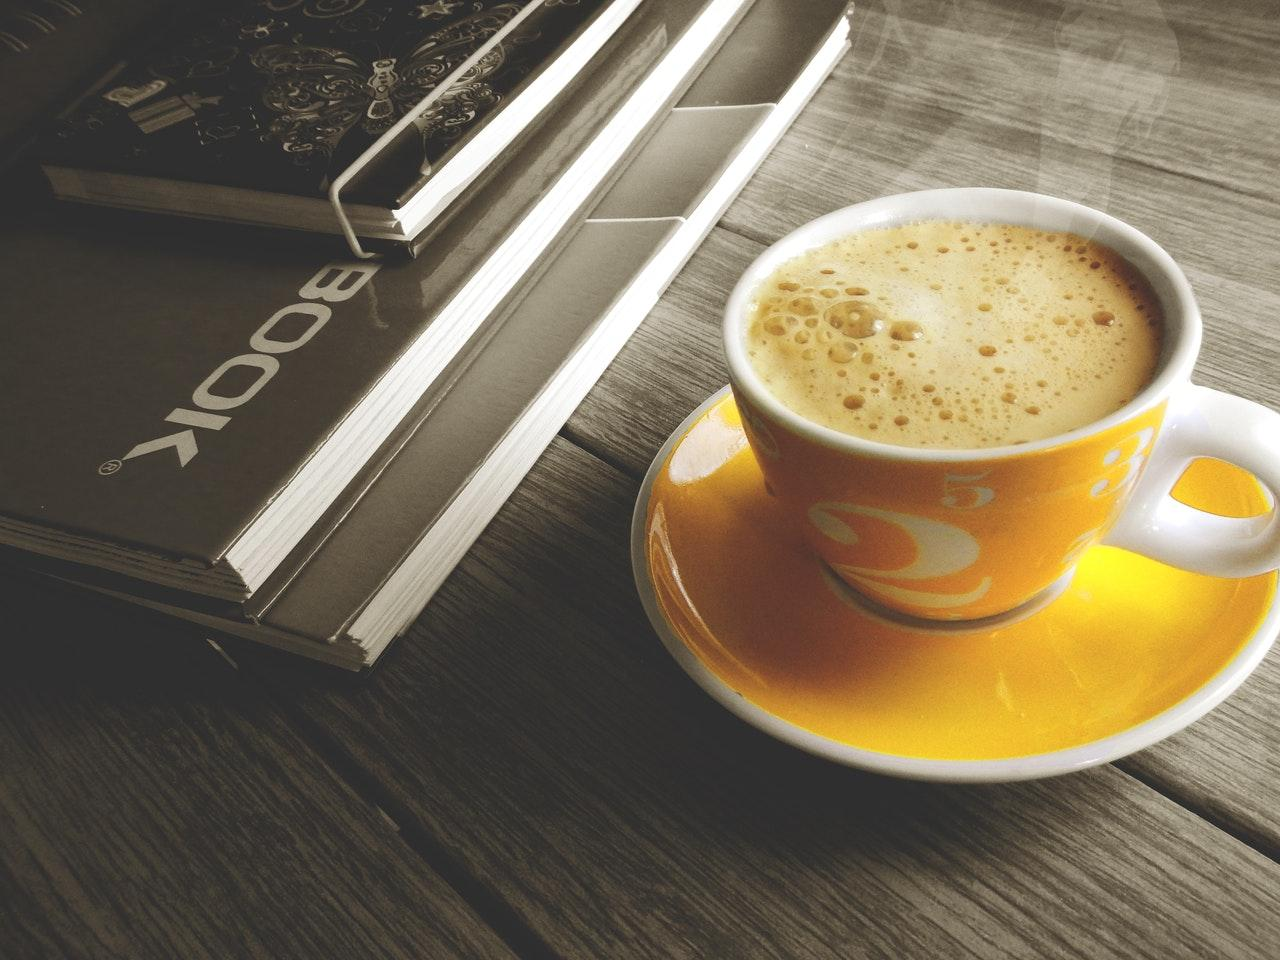 A yellow coffee cup on a wooden desk